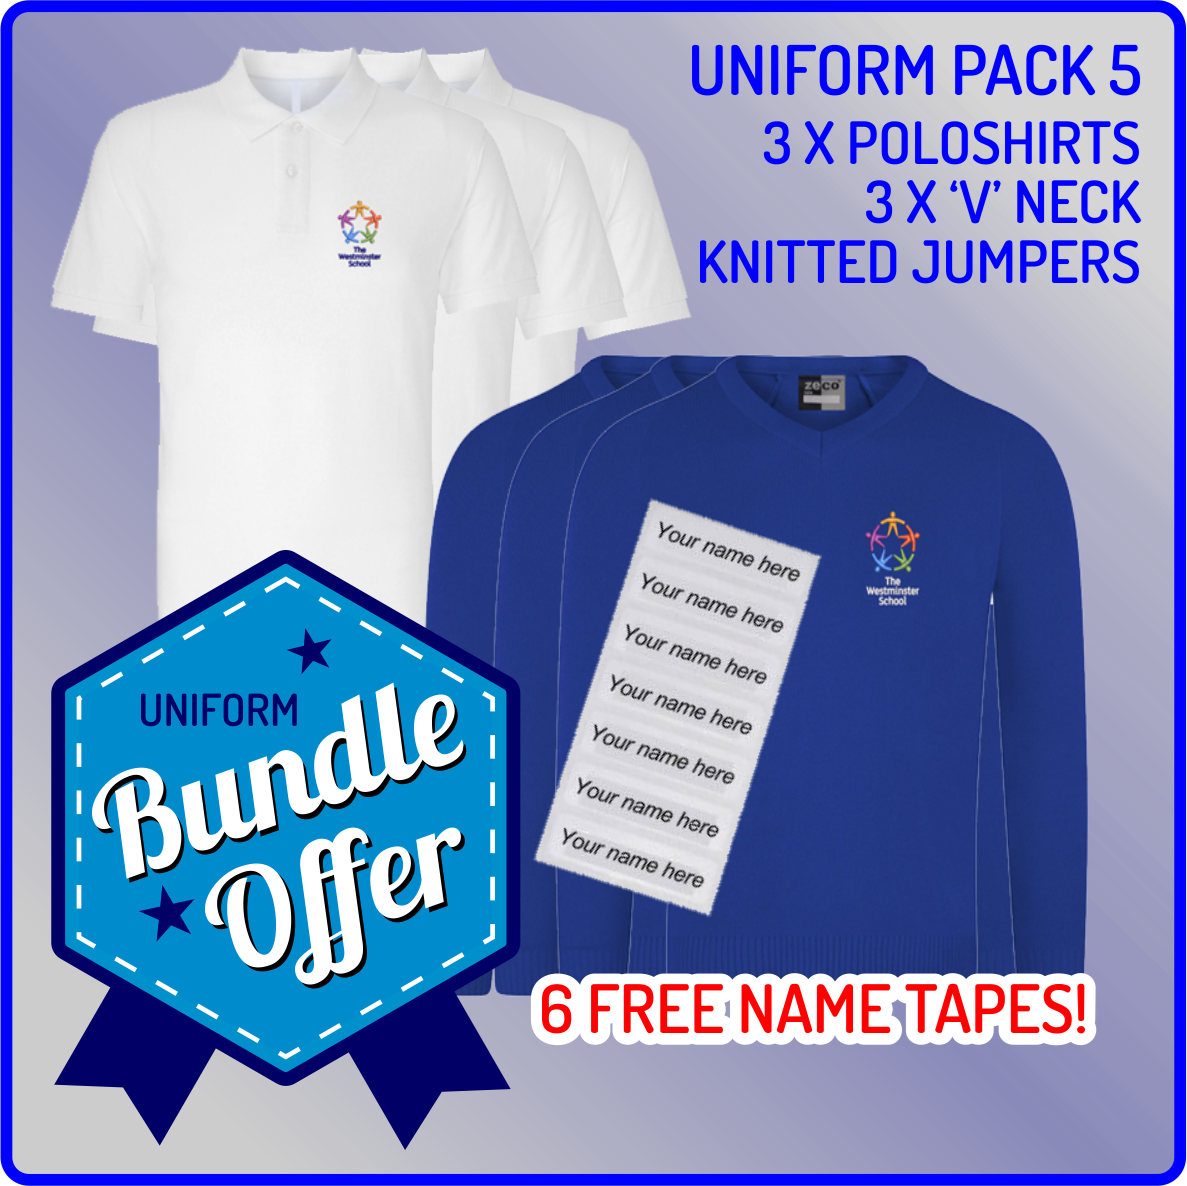 Bundle offer of 3 Knitted V Neck Jumpers & 3 Poloshirts - includes FREE name tapes!